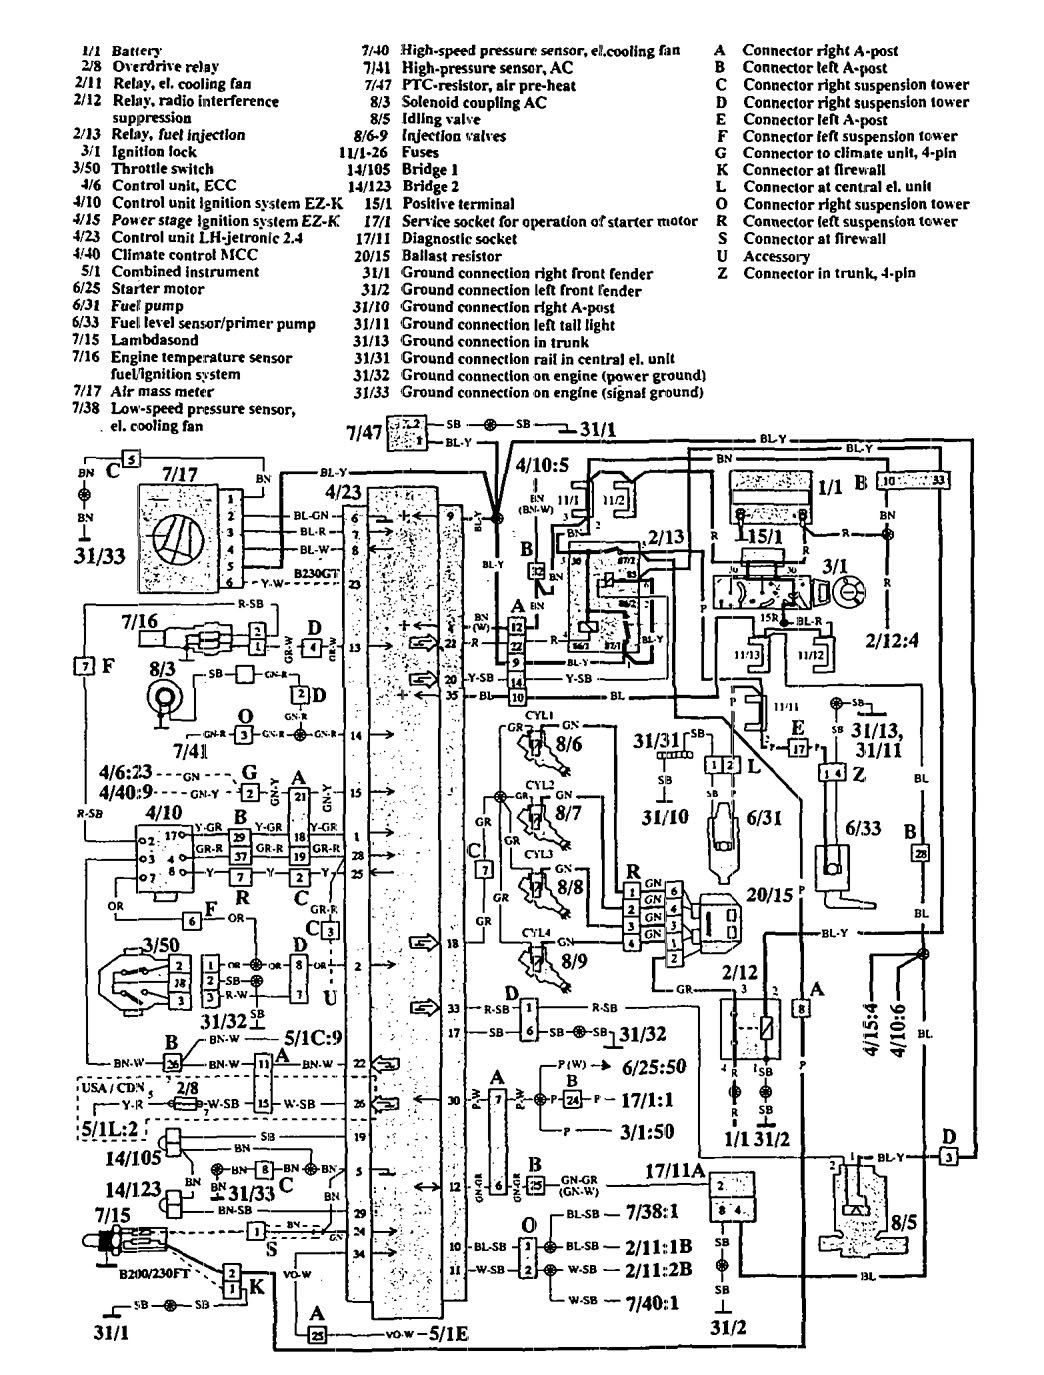 Totaline P474 1050 Wiring Diagram Trusted Diagrams Thermostat Wire Center U2022 Supco